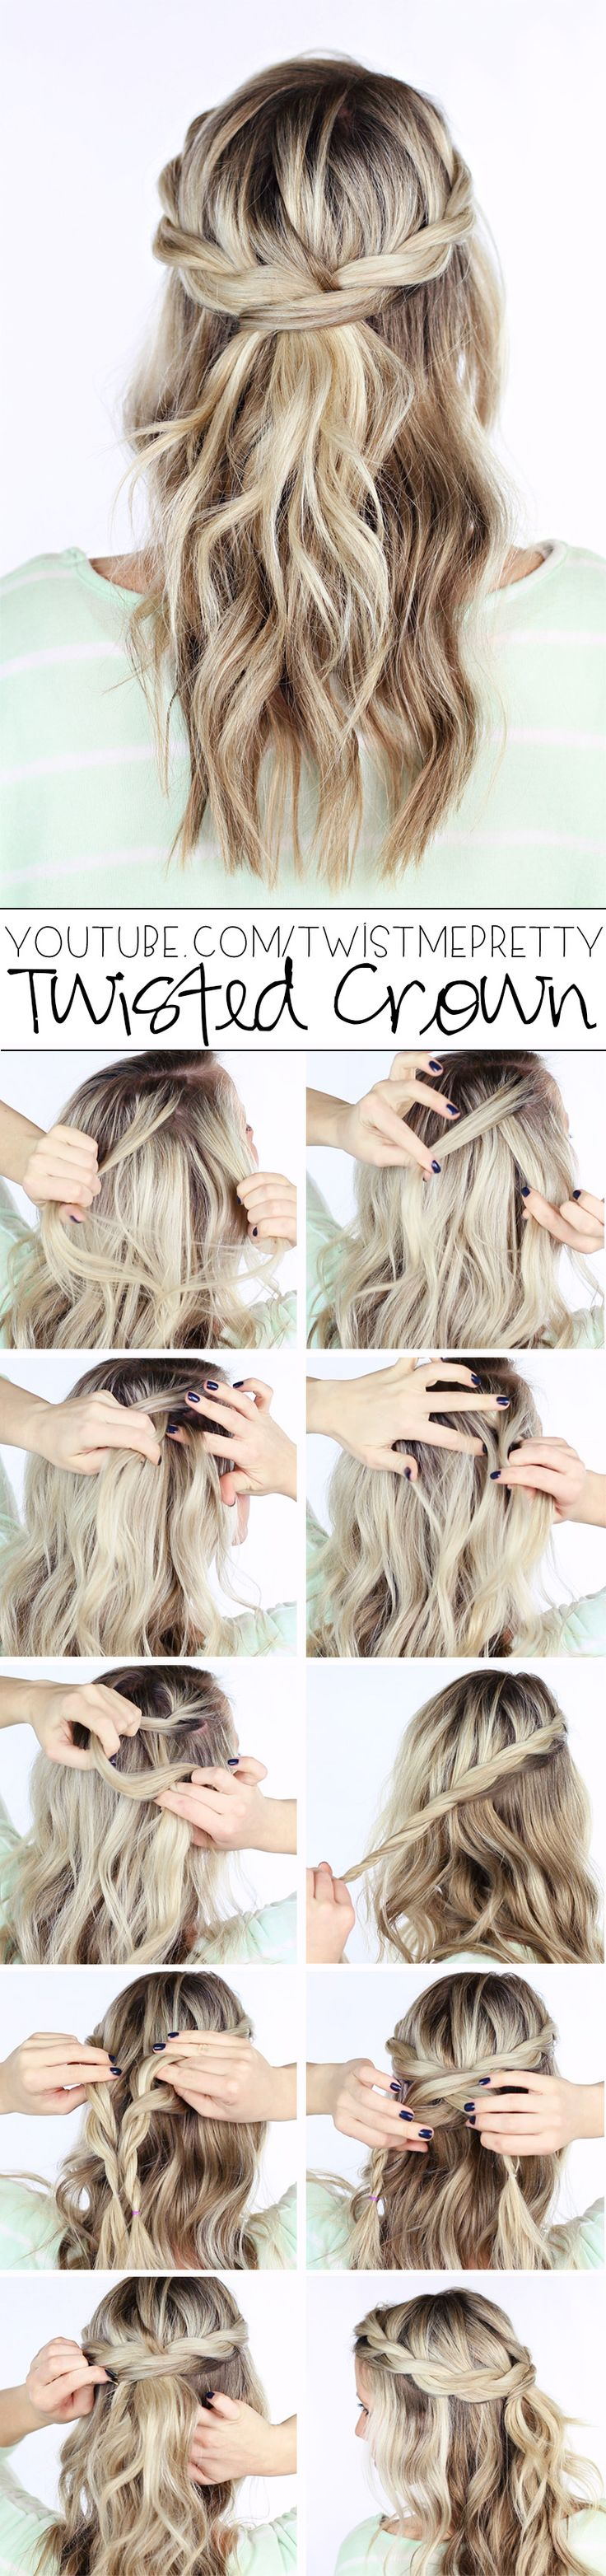 77 best Hair ideas images on Pinterest